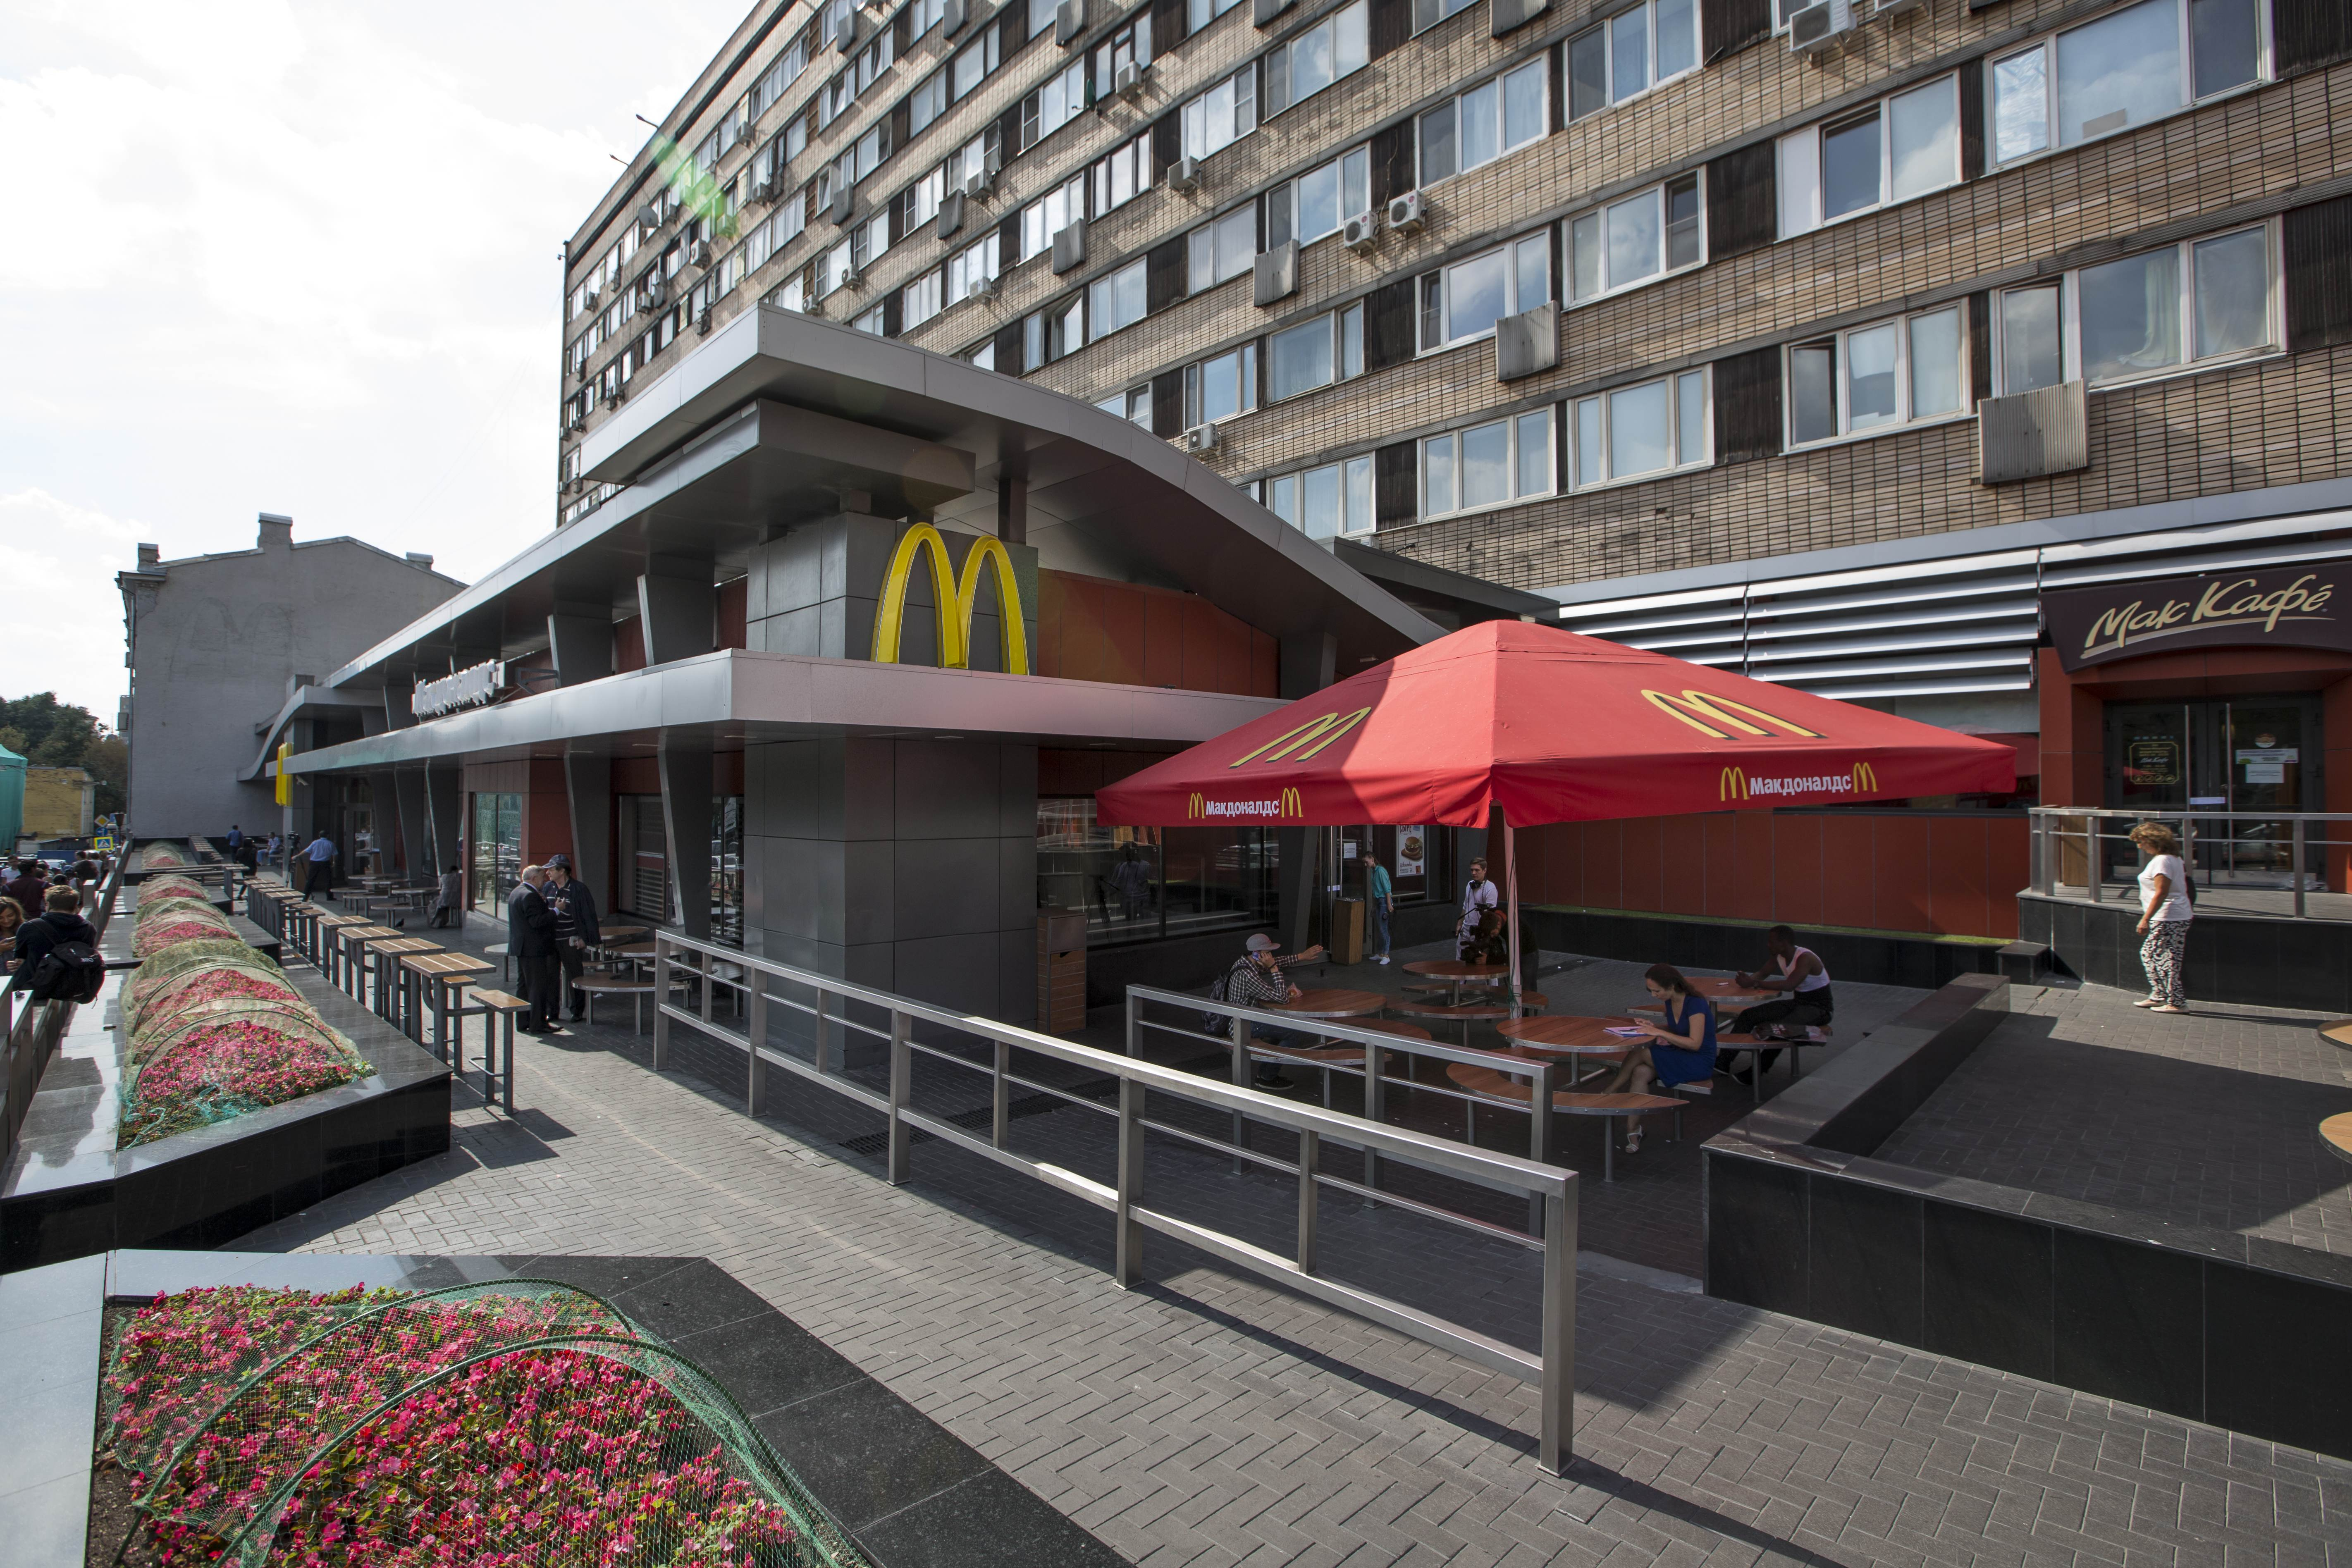 The oldest of Moscow's McDonald's outlets, which was opened on Jan. 31, 1990, is closed on Thursday, Aug. 21.